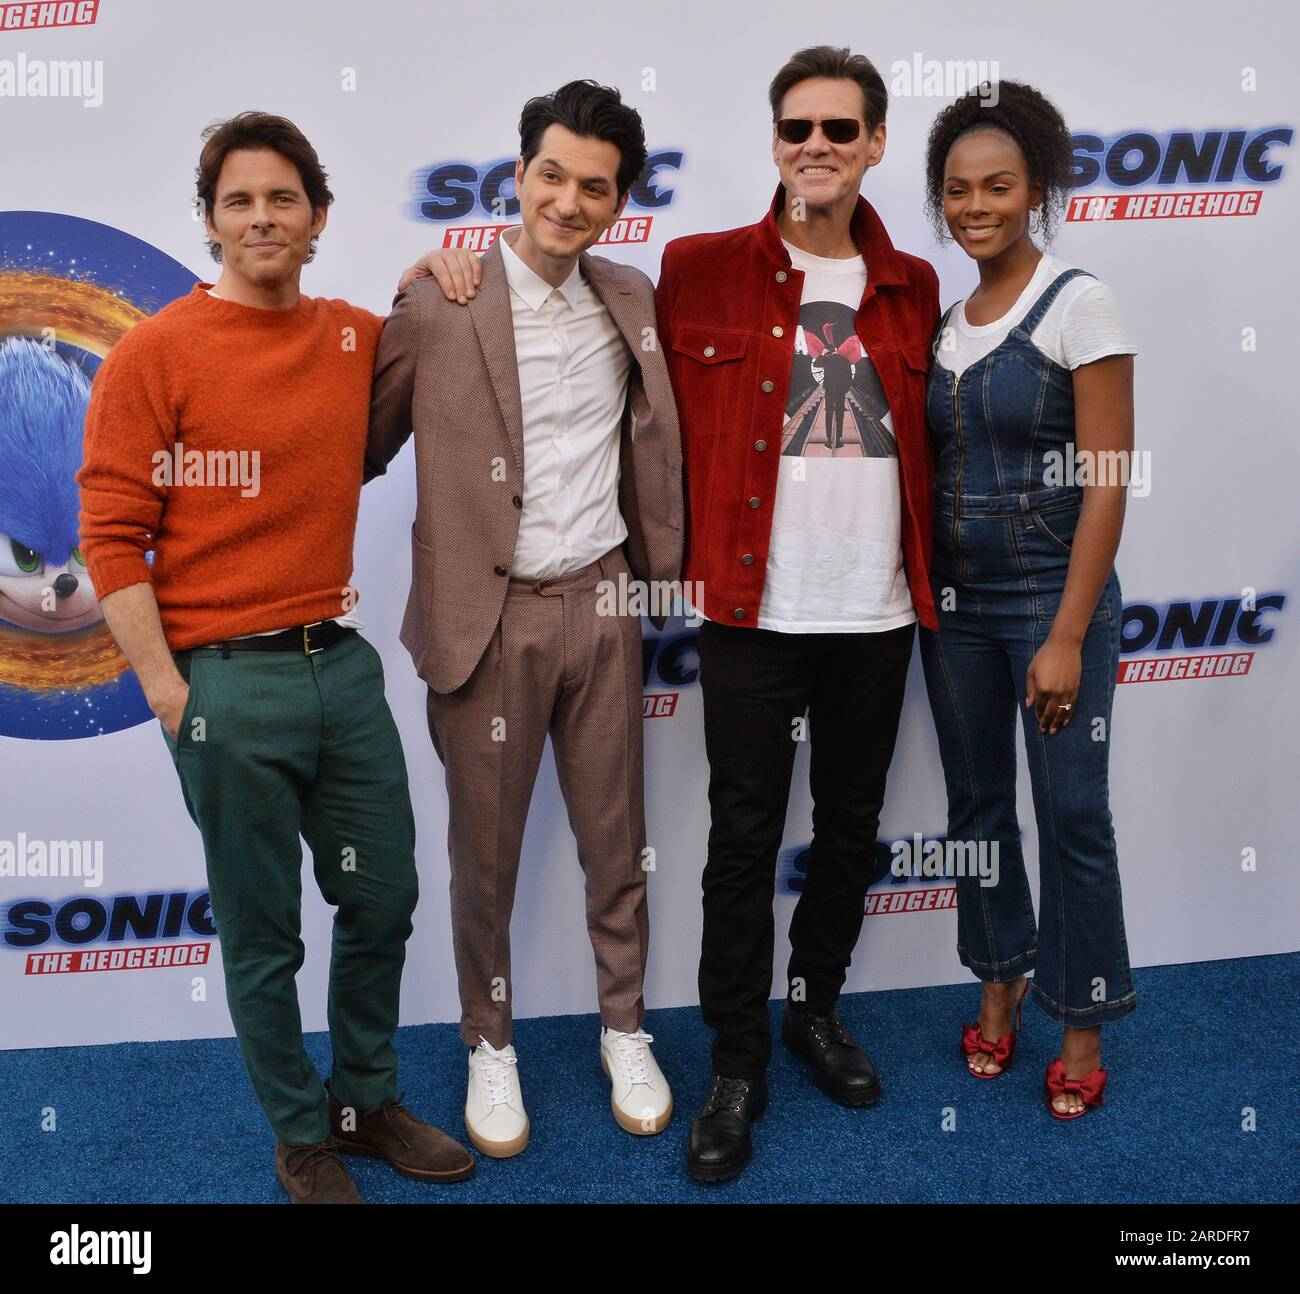 Los Angeles United States 26th Jan 2020 Cast Members James Marsden Ben Schwartz Jim Carrey And Tika Sumpter L R Attend The Sonic The Hedgehog Family Day Event On The Paramount Pictures Lot